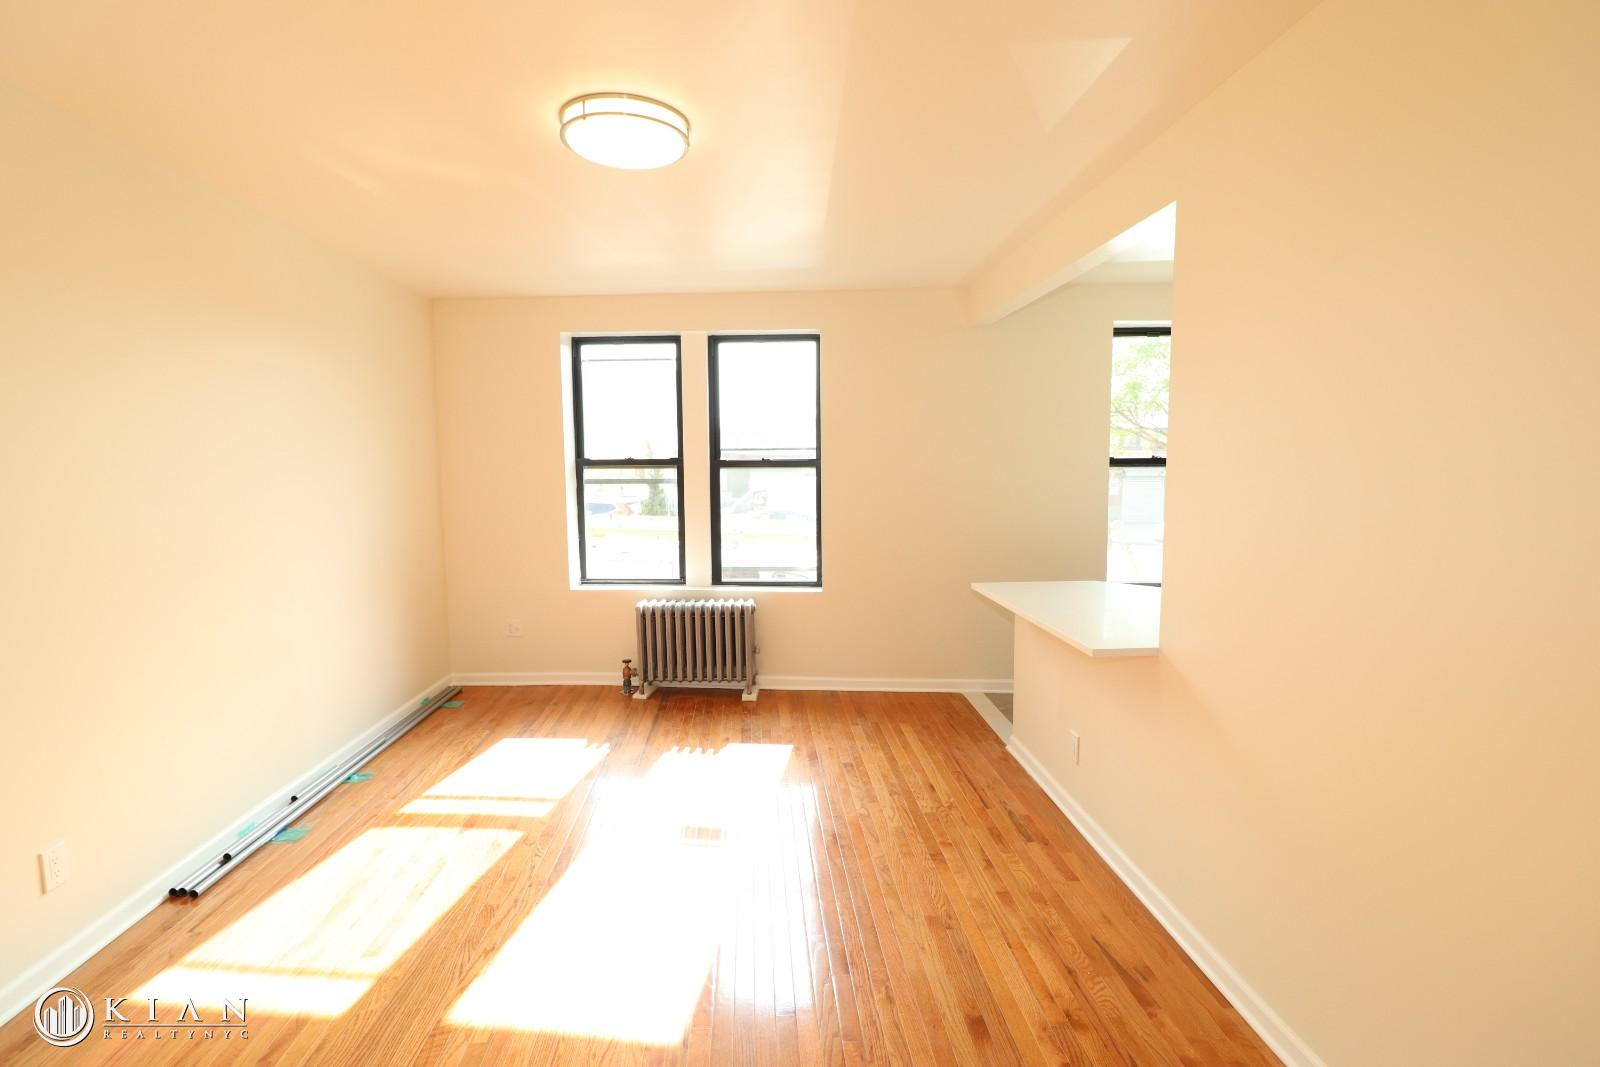 37-33 College Point Boulevard, Apt A-1G, Queens, New York 11354